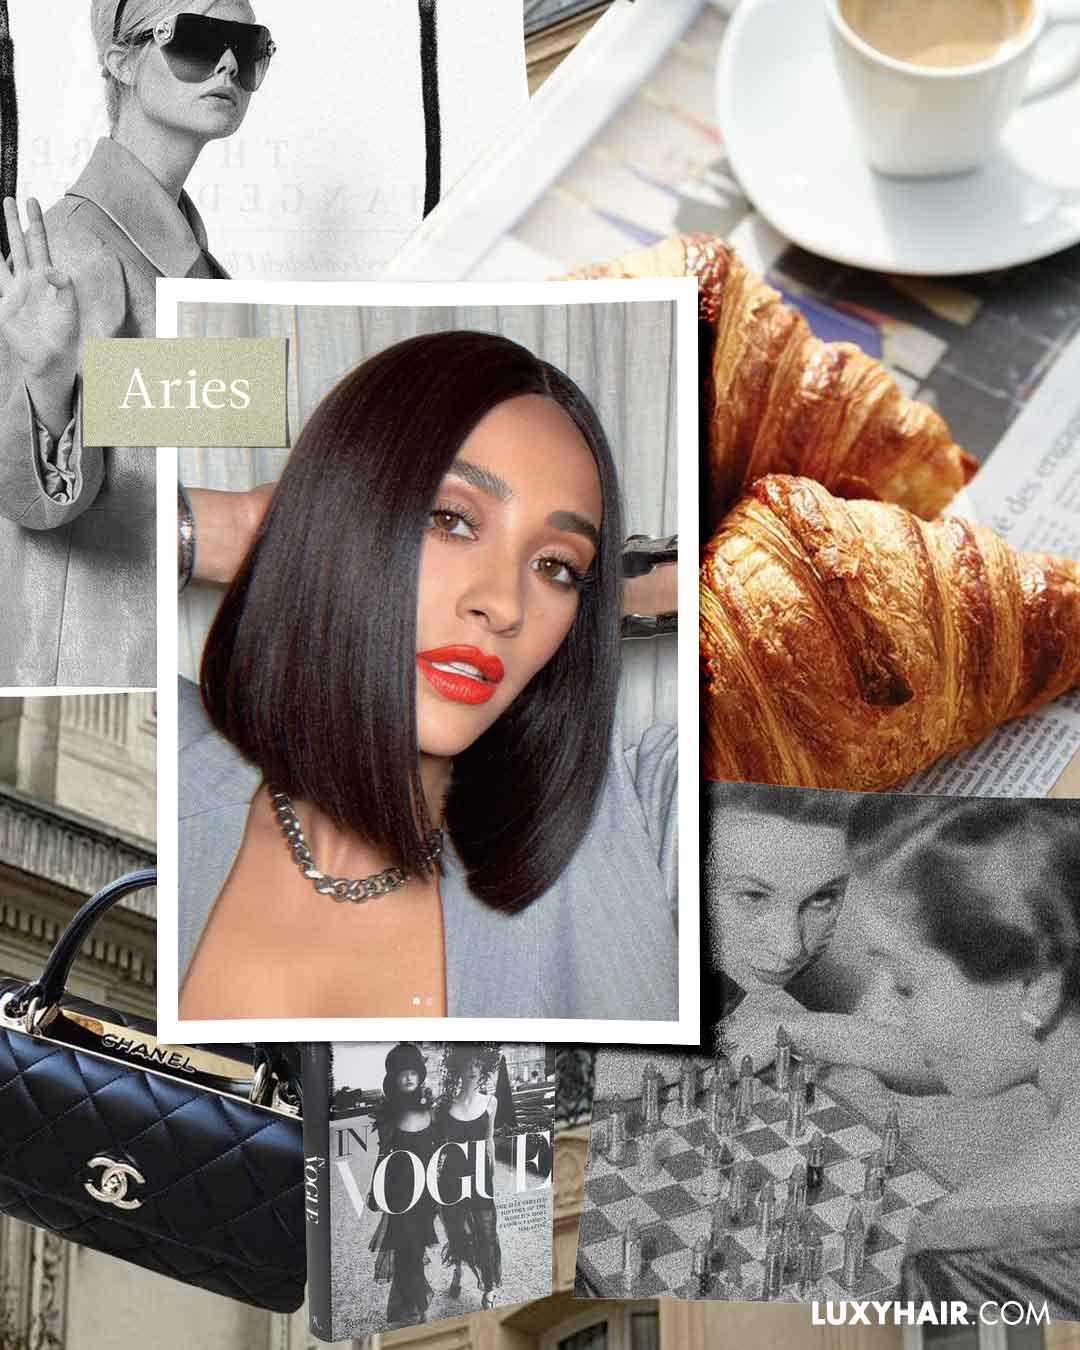 2021 hair horoscopes: the perfect hairstyle for your zodiac sign